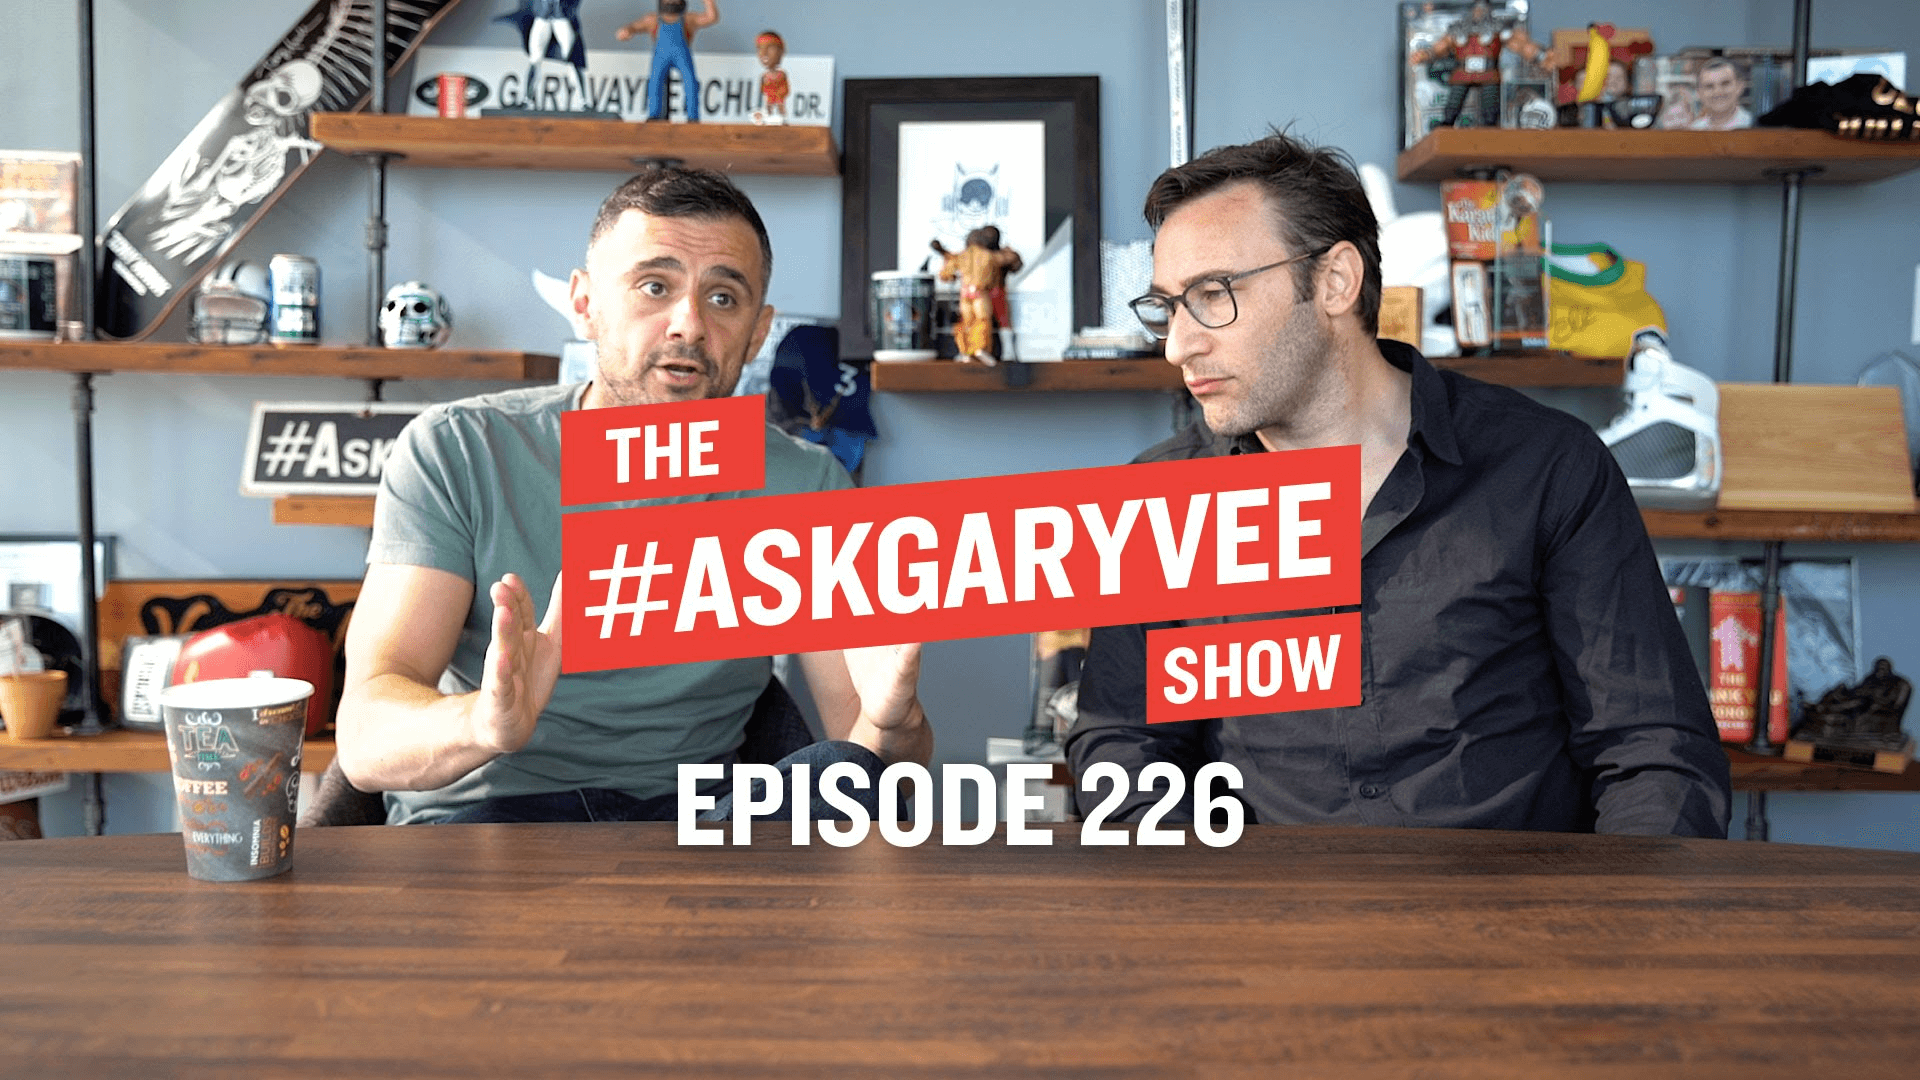 #AskGaryVee Episode 226 with Simon Sinek